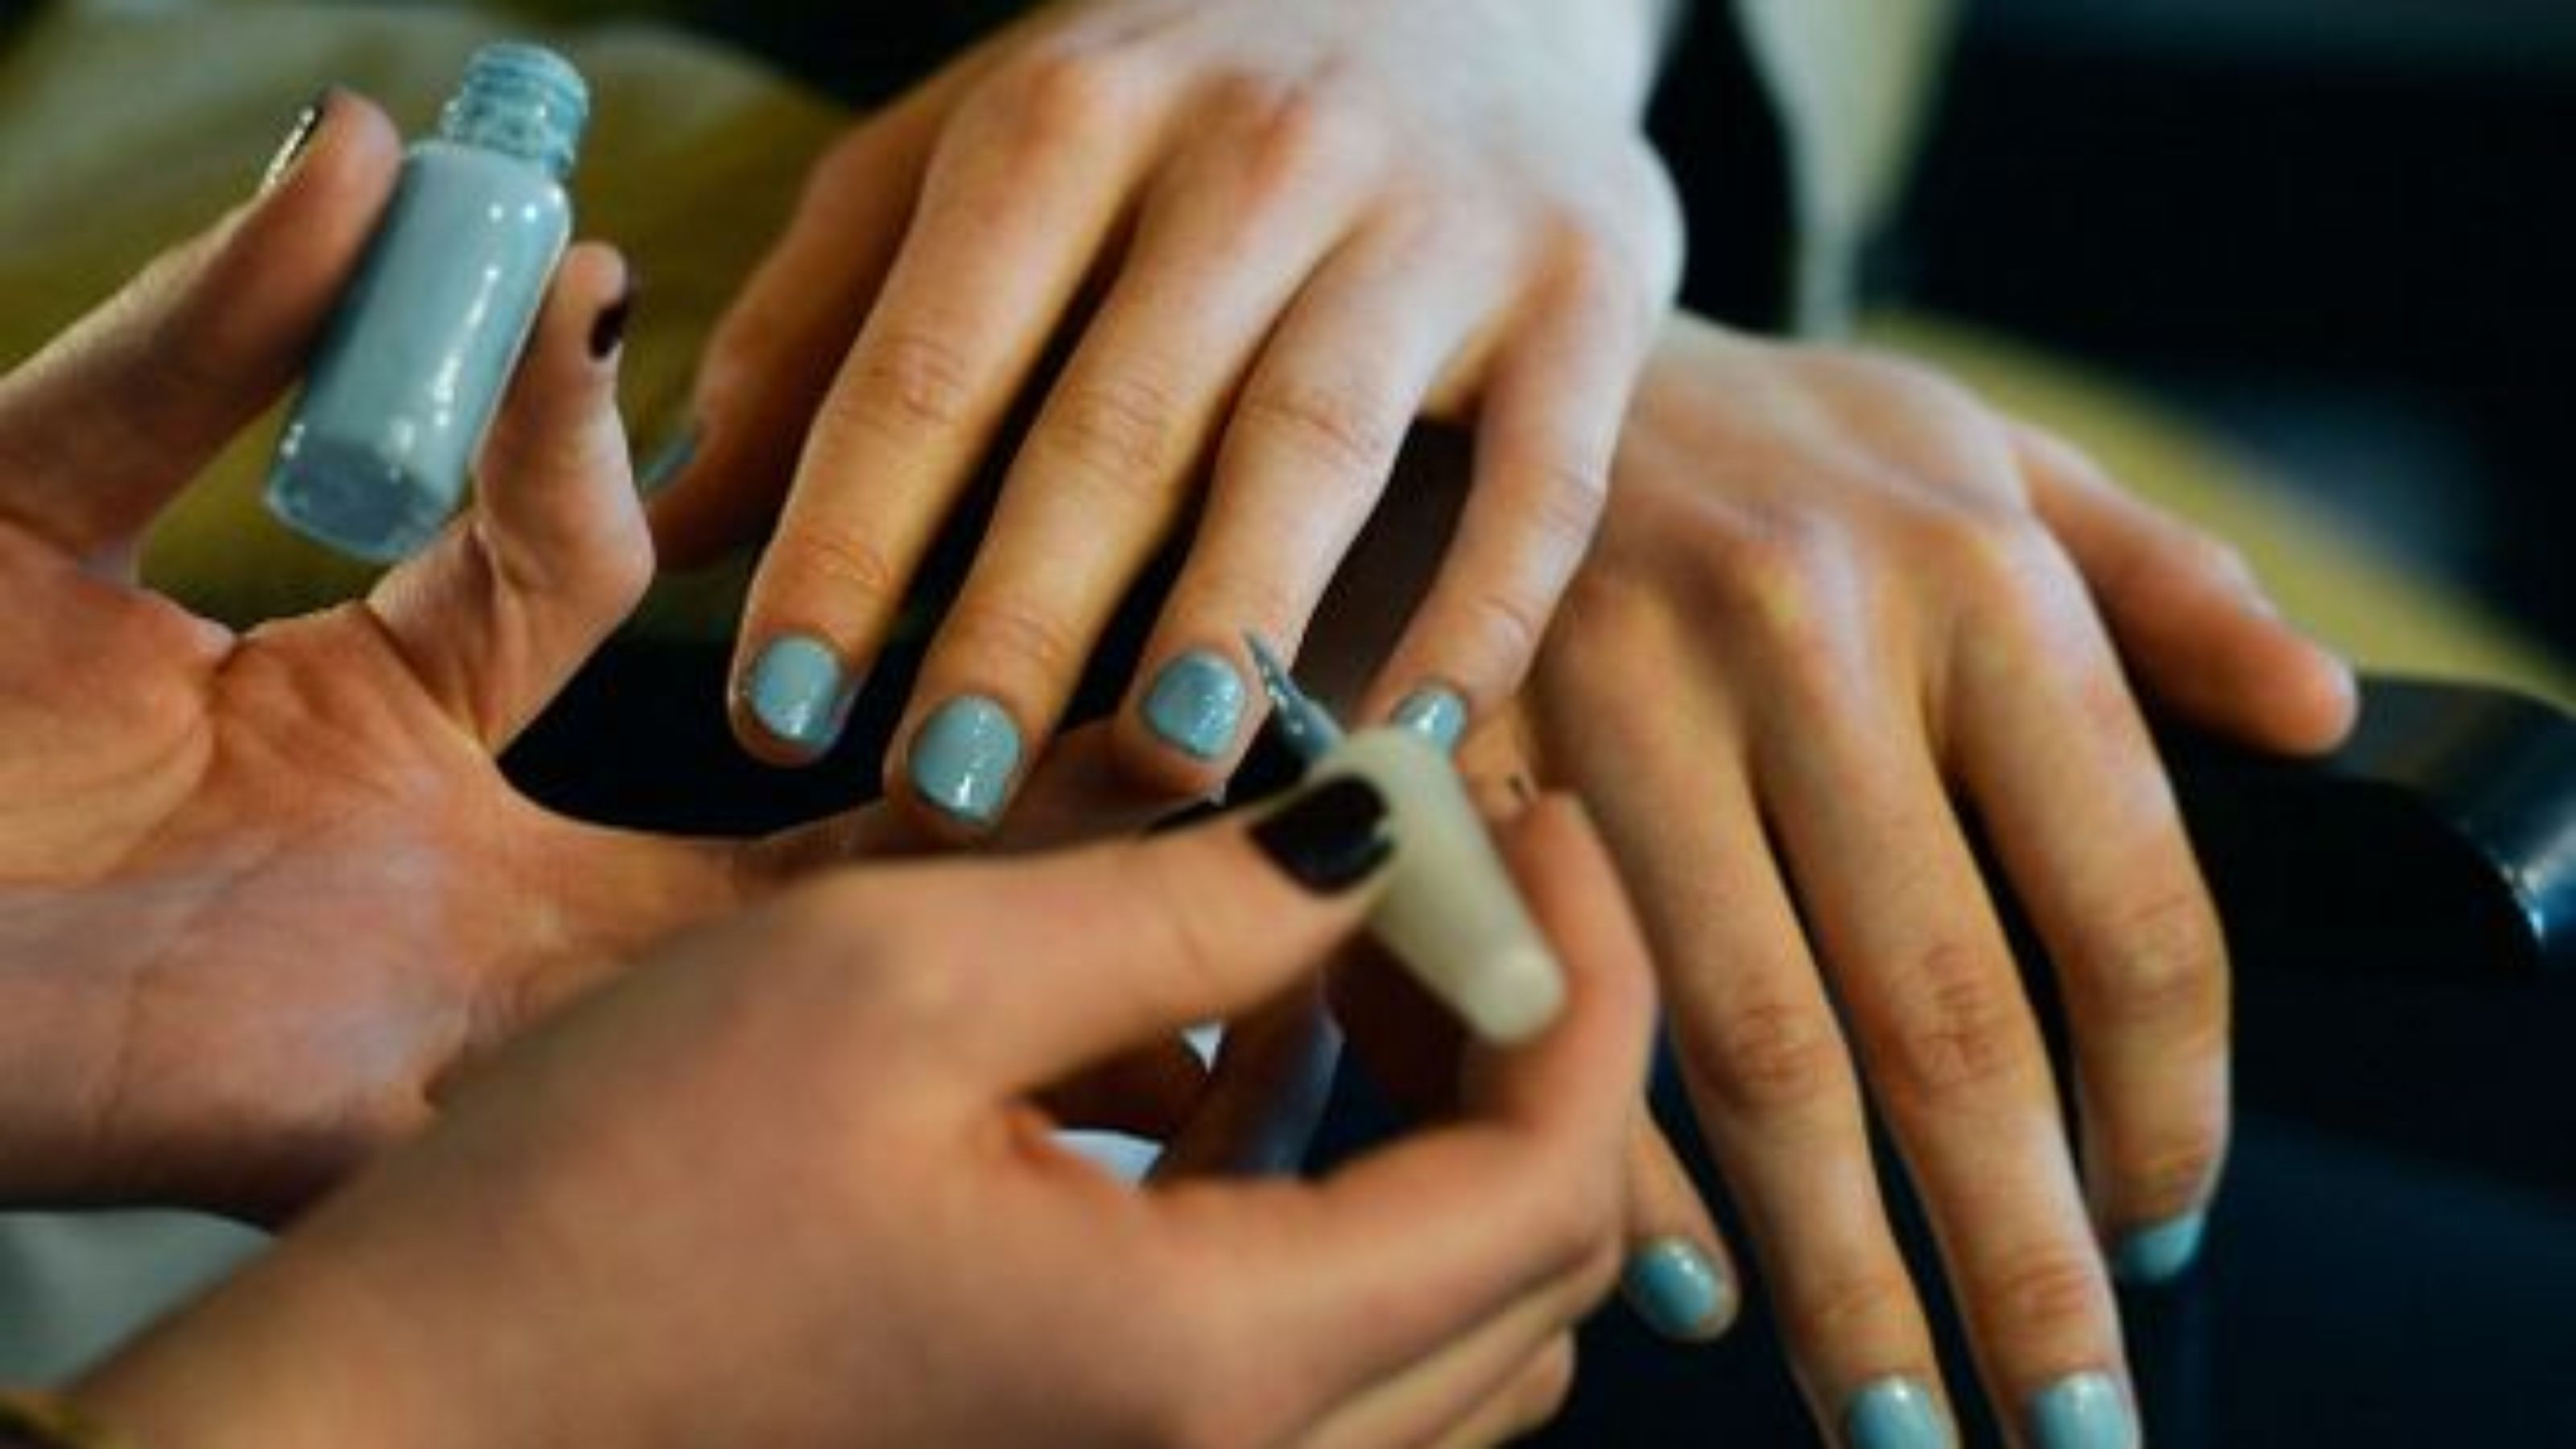 To acquire Rape date drug detecting nail polish pictures trends